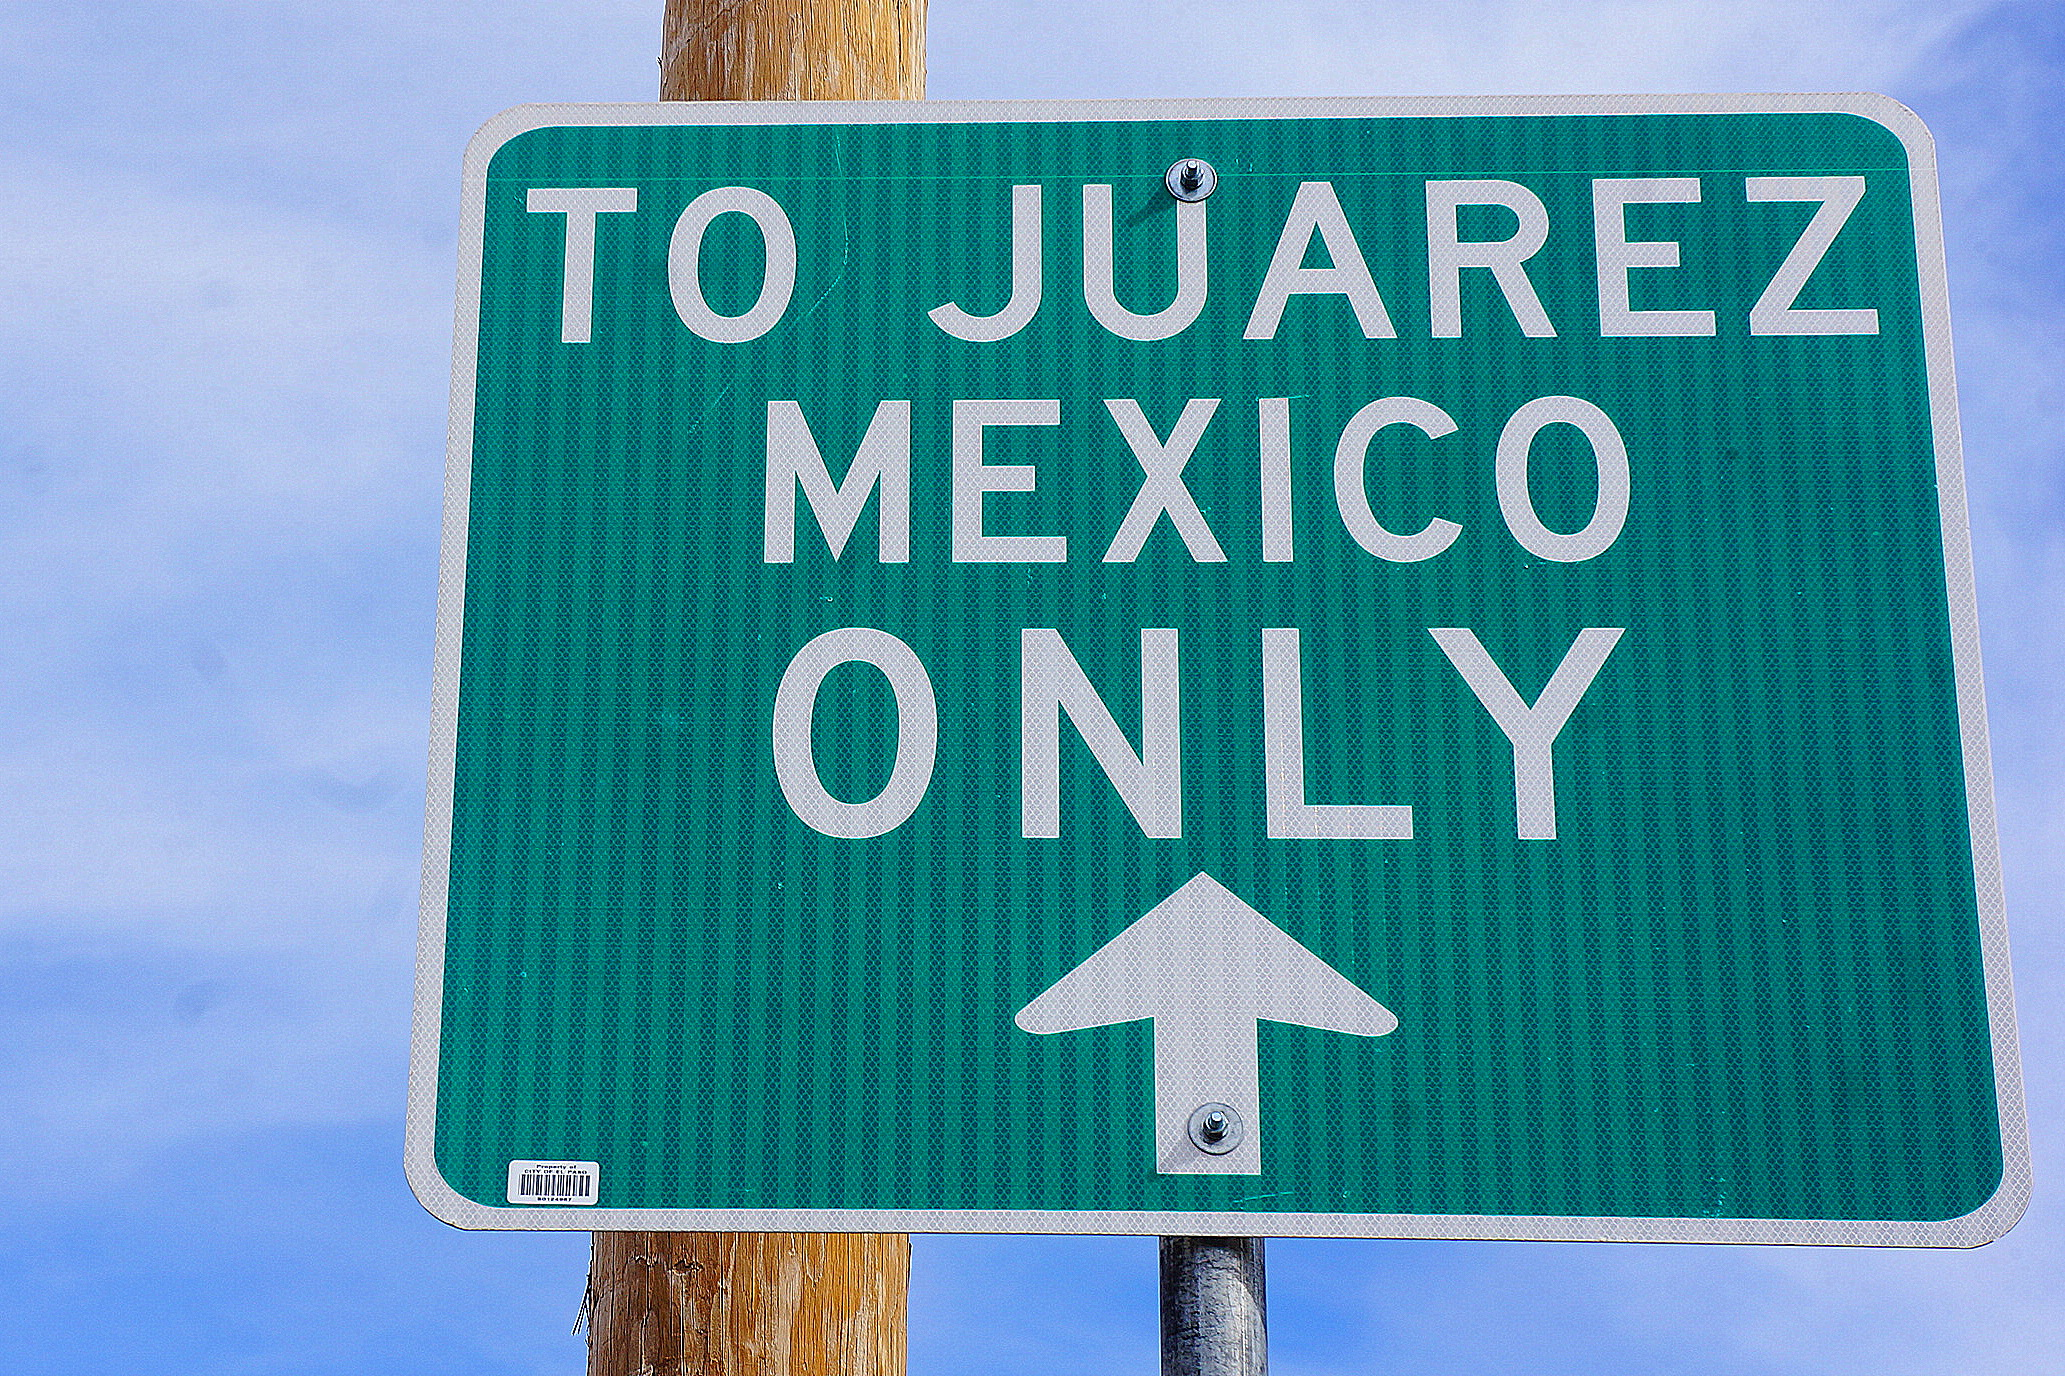 photo essay crossing the el paso juarez border suffragio there are four entry points into juatildeiexclrez from el paso only two of which are open to pedestrians kevin lees